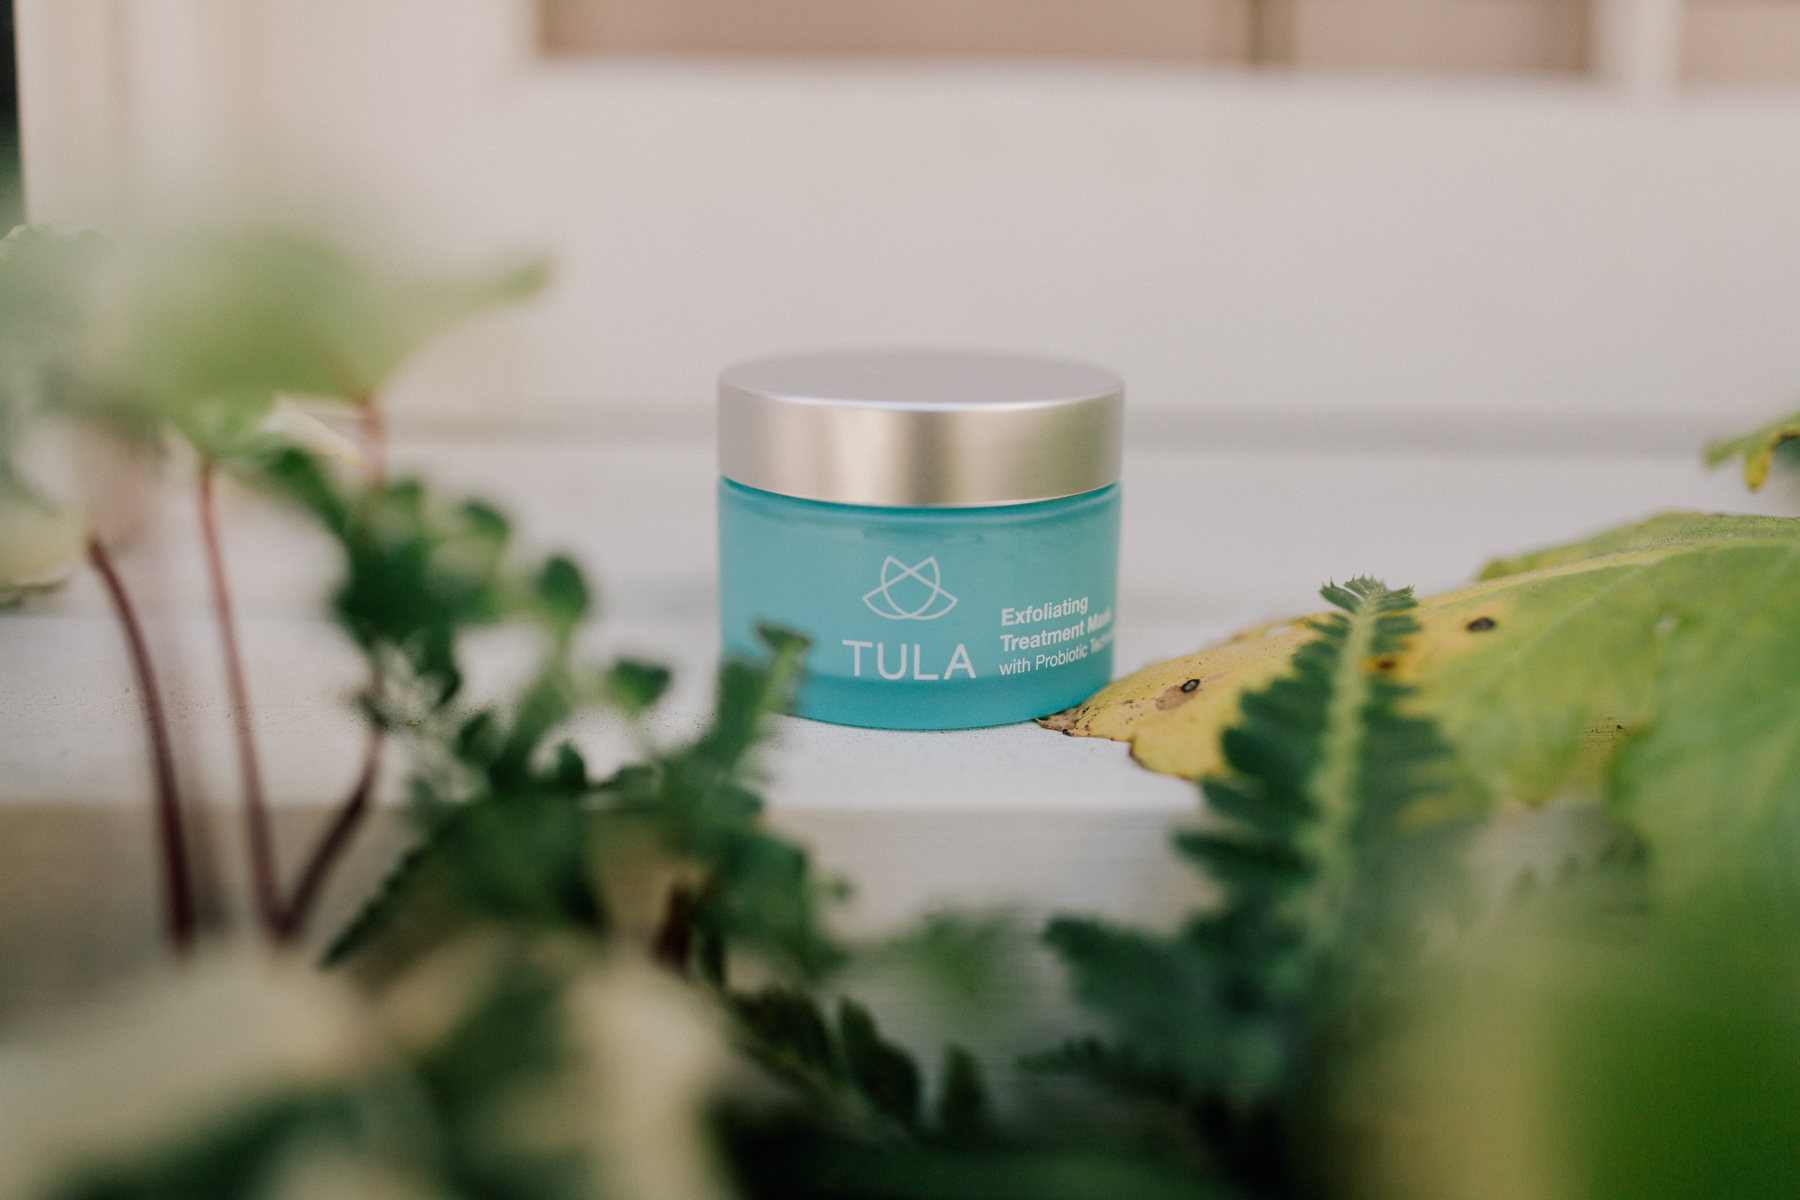 Tula Probiotic Skincare - A New Skin Solution | Kelly in the City